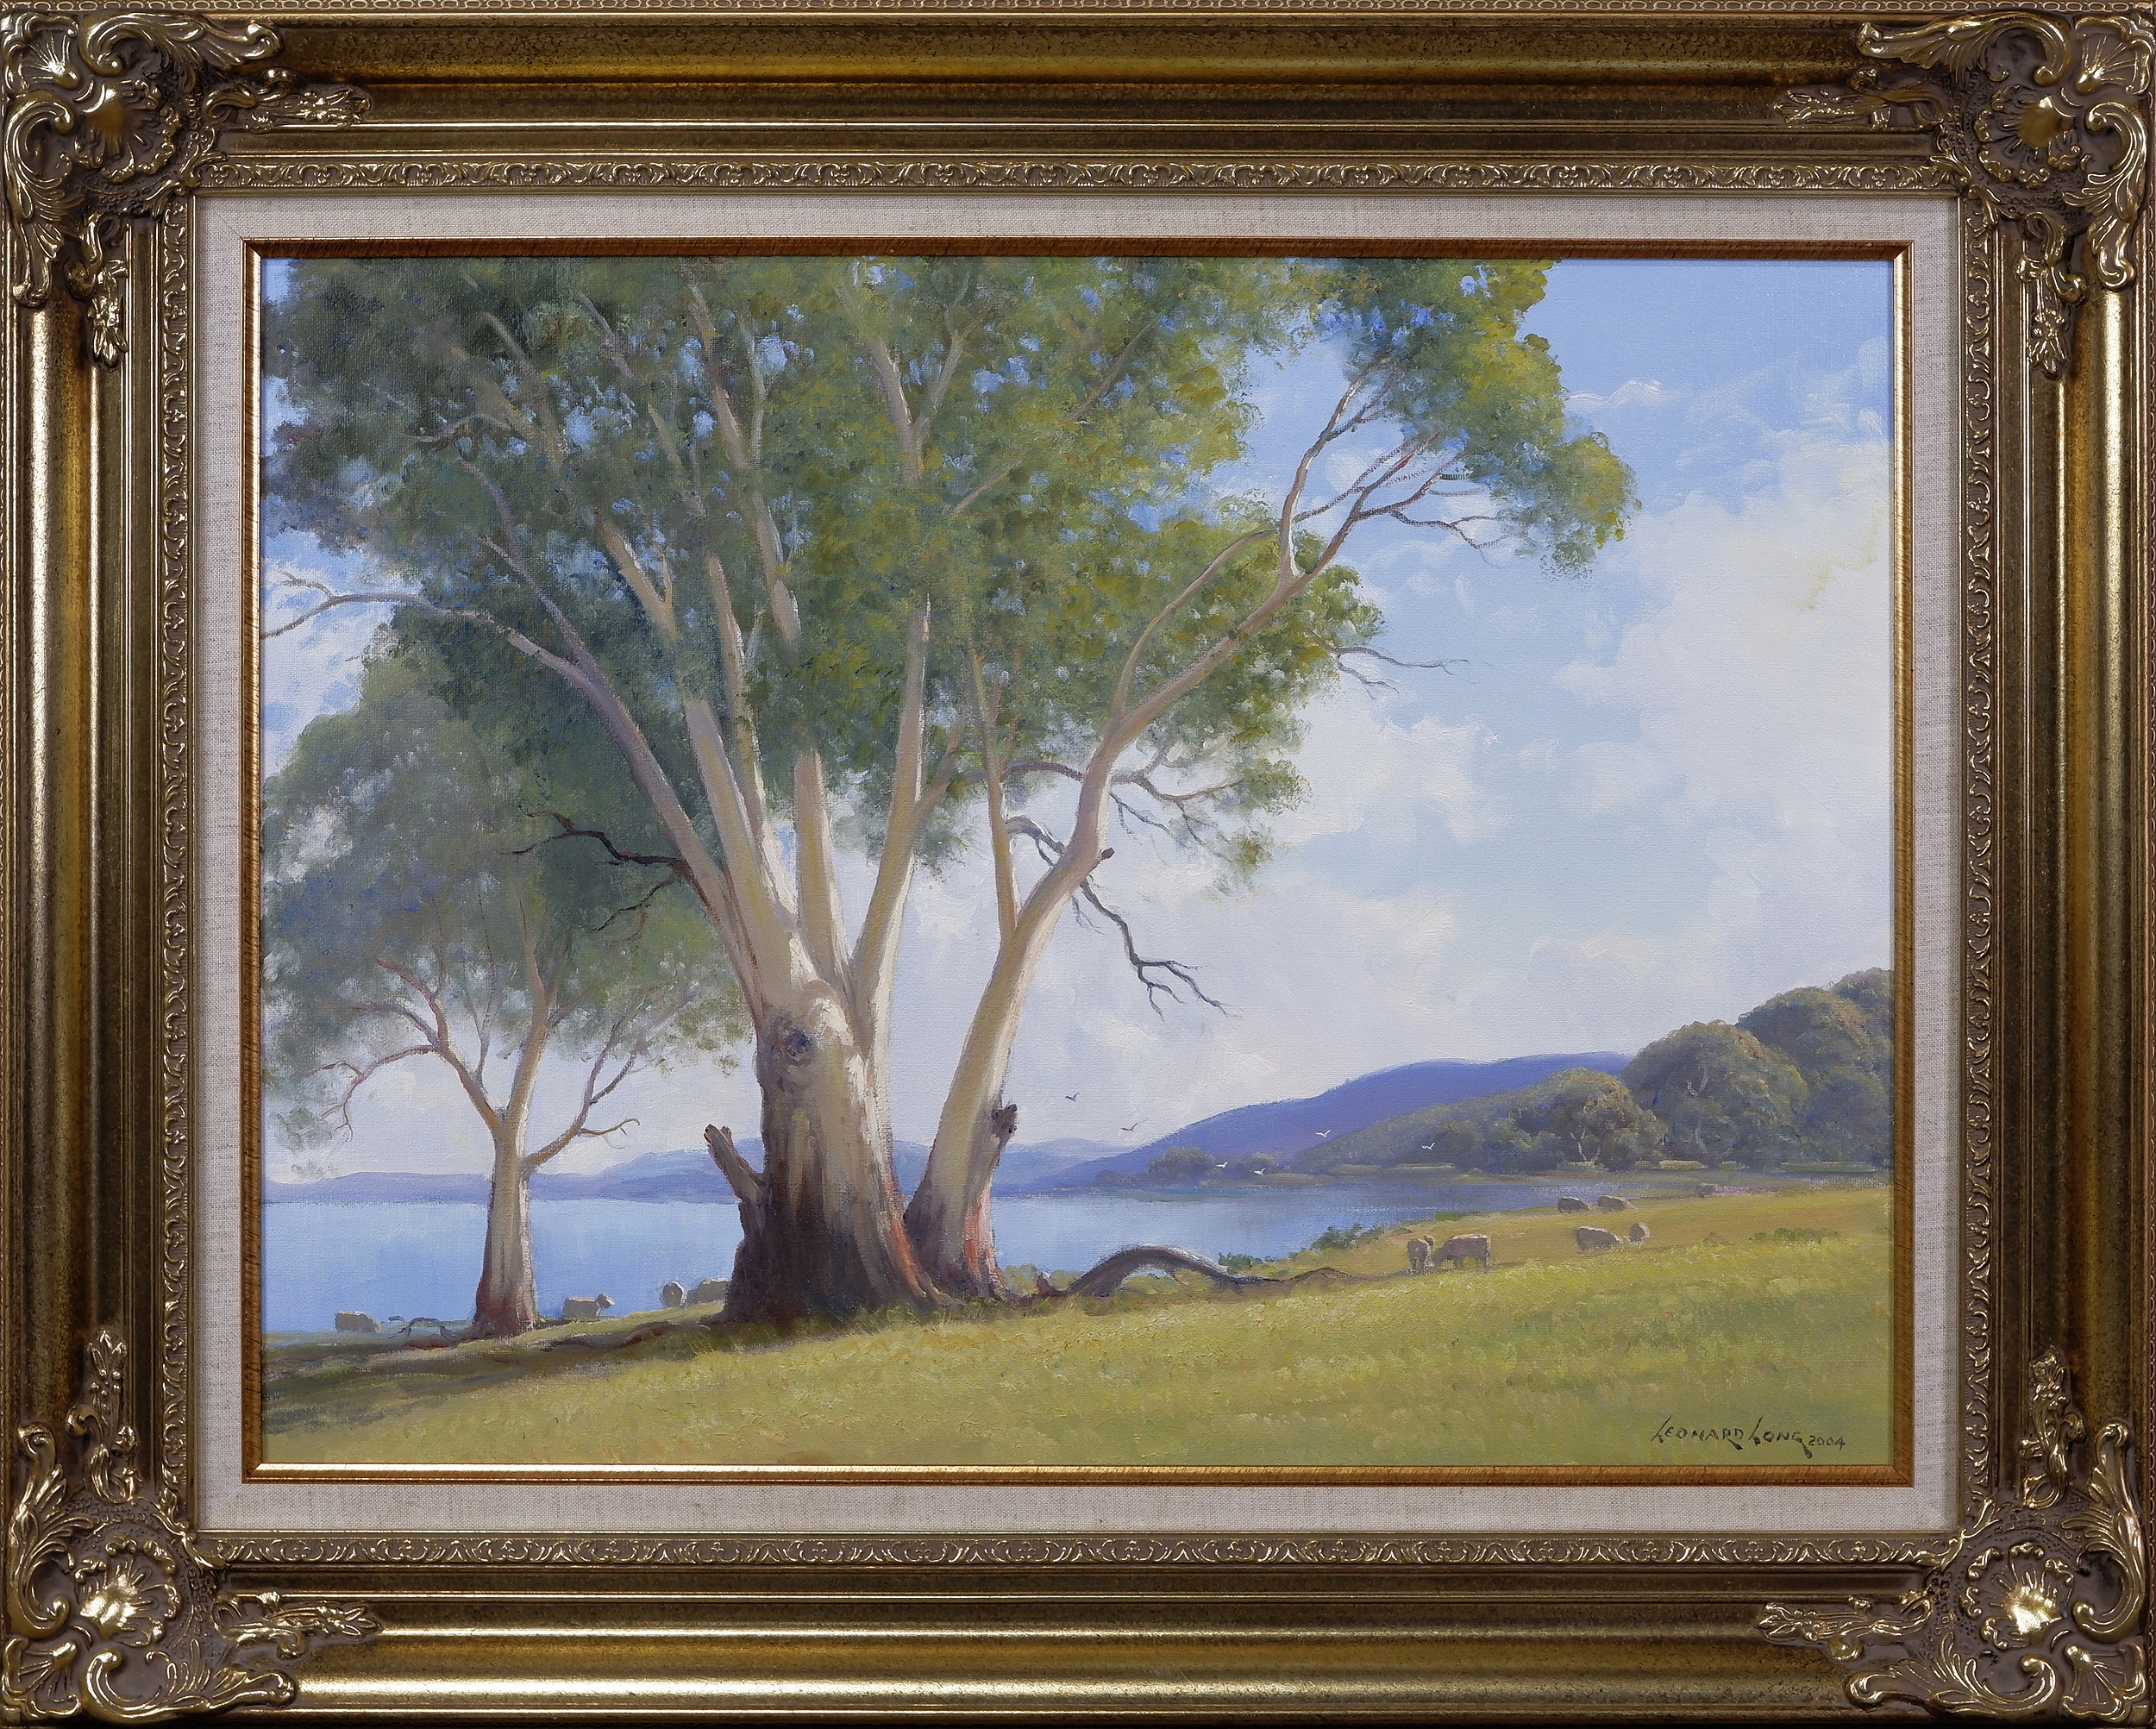 'Leonard Long (1911-2013), Lake George, New South Wales 2004, Oil on Canvas on Board'